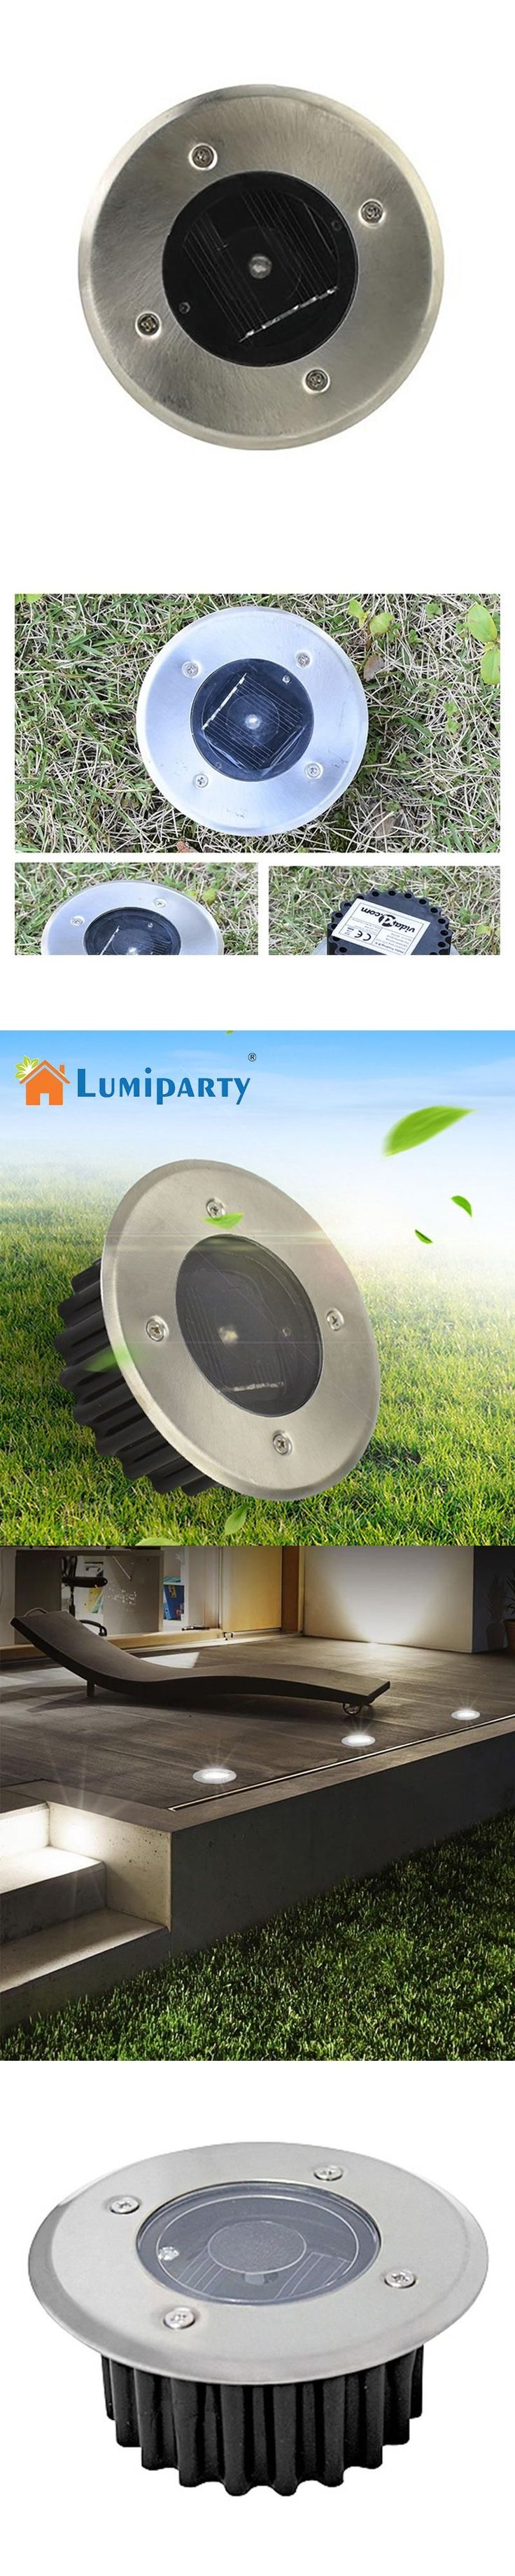 LumiParty Outdoor Solar LED Buried Floor Lights Waterproof Stainless Steel Ground Garden Lamp Solar Lighting for Yard Driveway